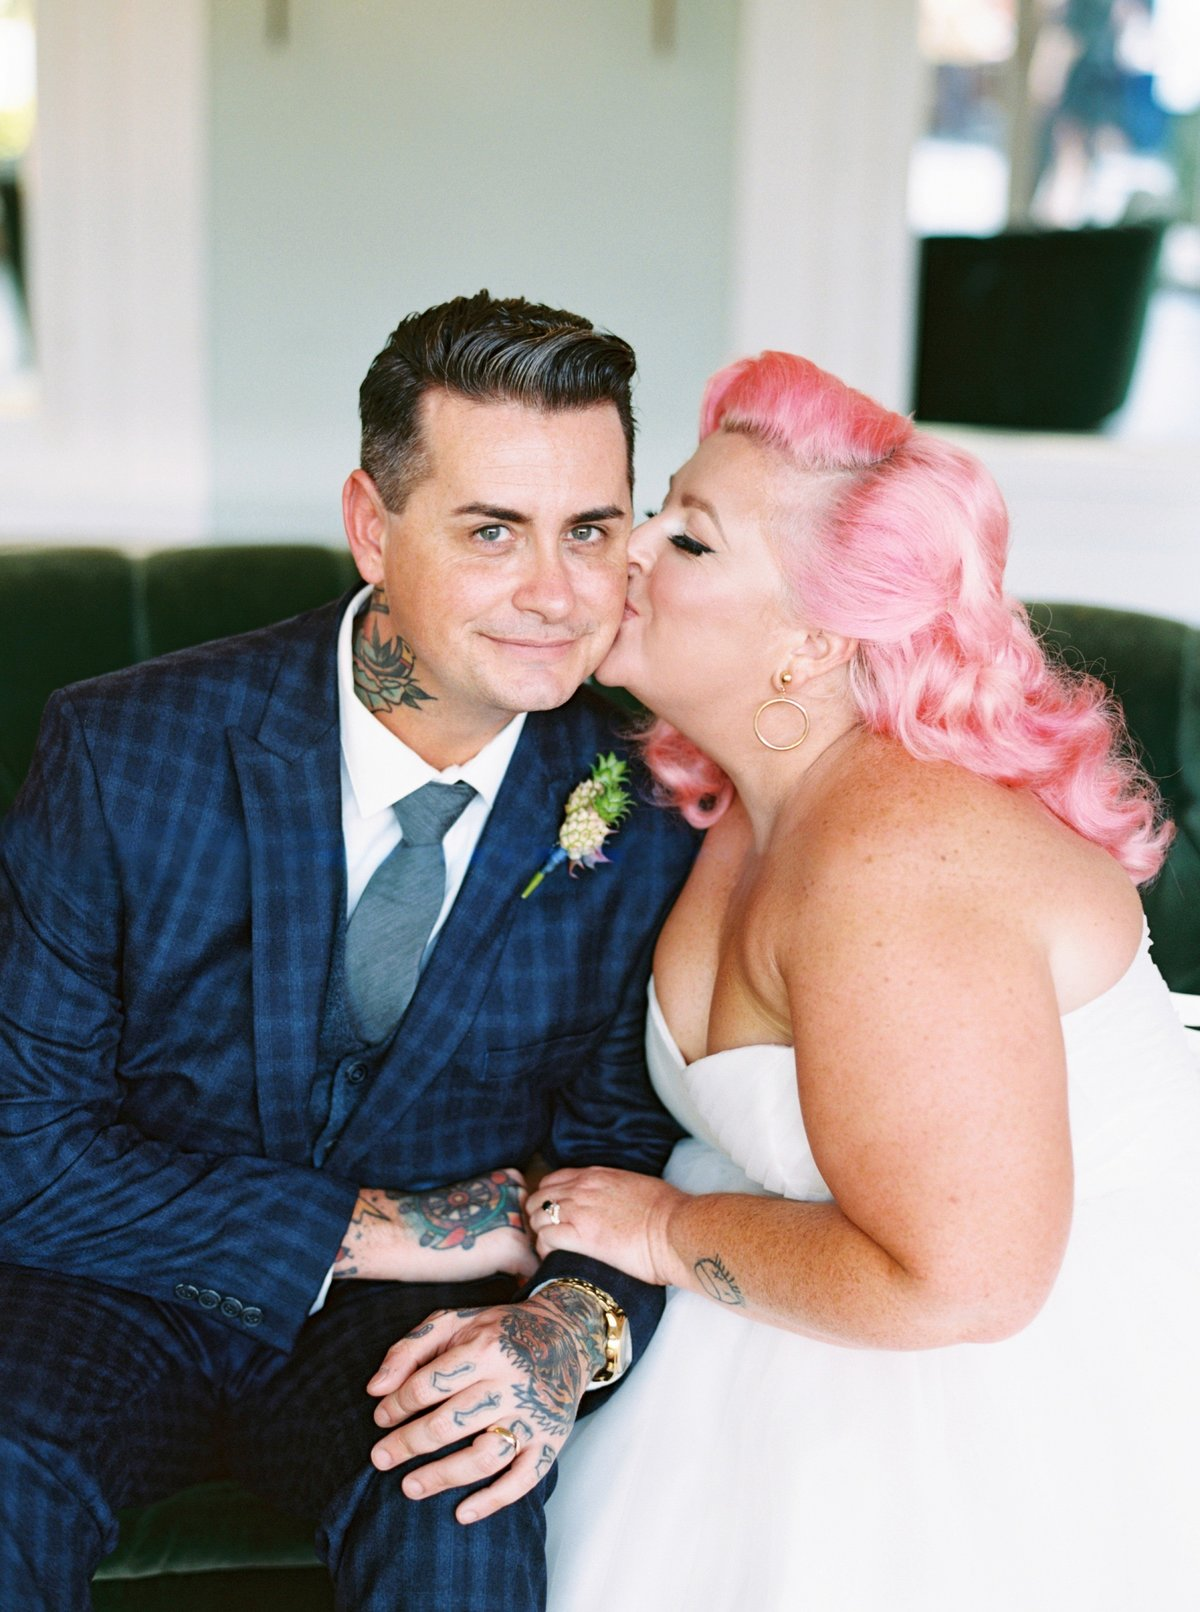 nicoleclareyphotography_jenn+pete_los-angeles_wedding_0016